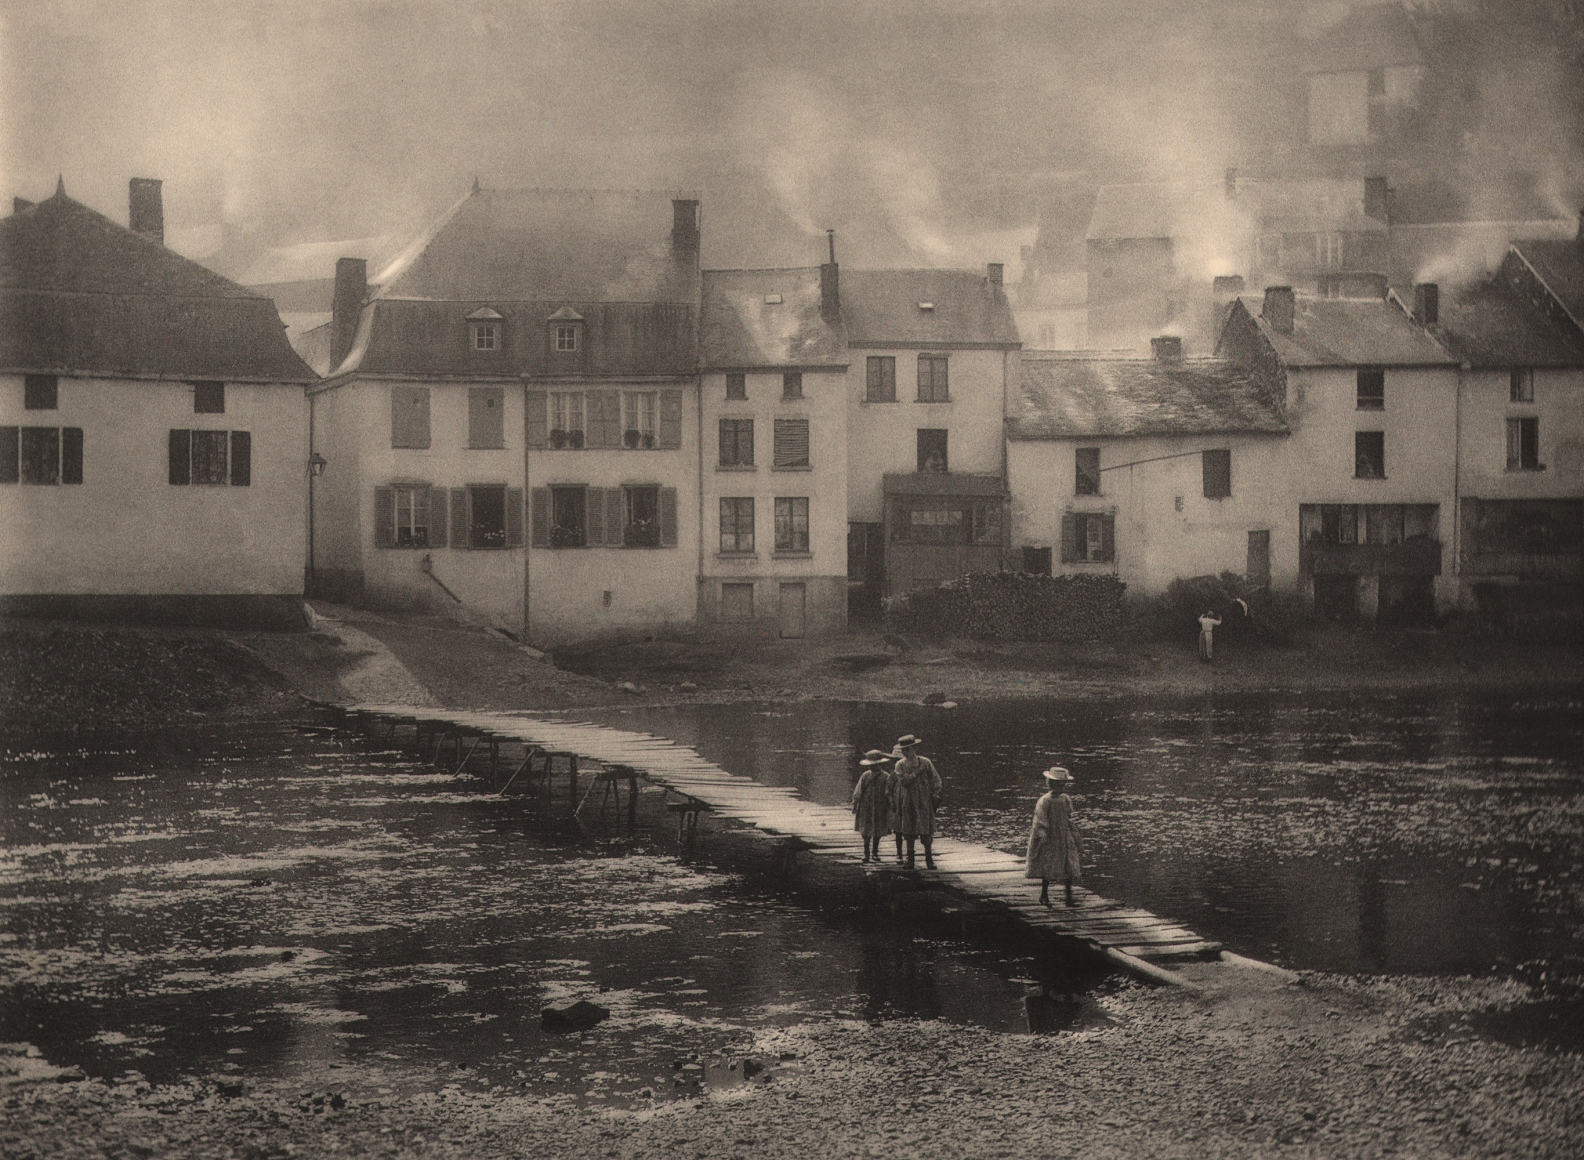 15. Léonard Misonne, On alume le jeux, 1924. Three young girls walk across a small body of water on a wooden dock. Waterside homes with smoke rising above them in the background. Sepia-toned print.